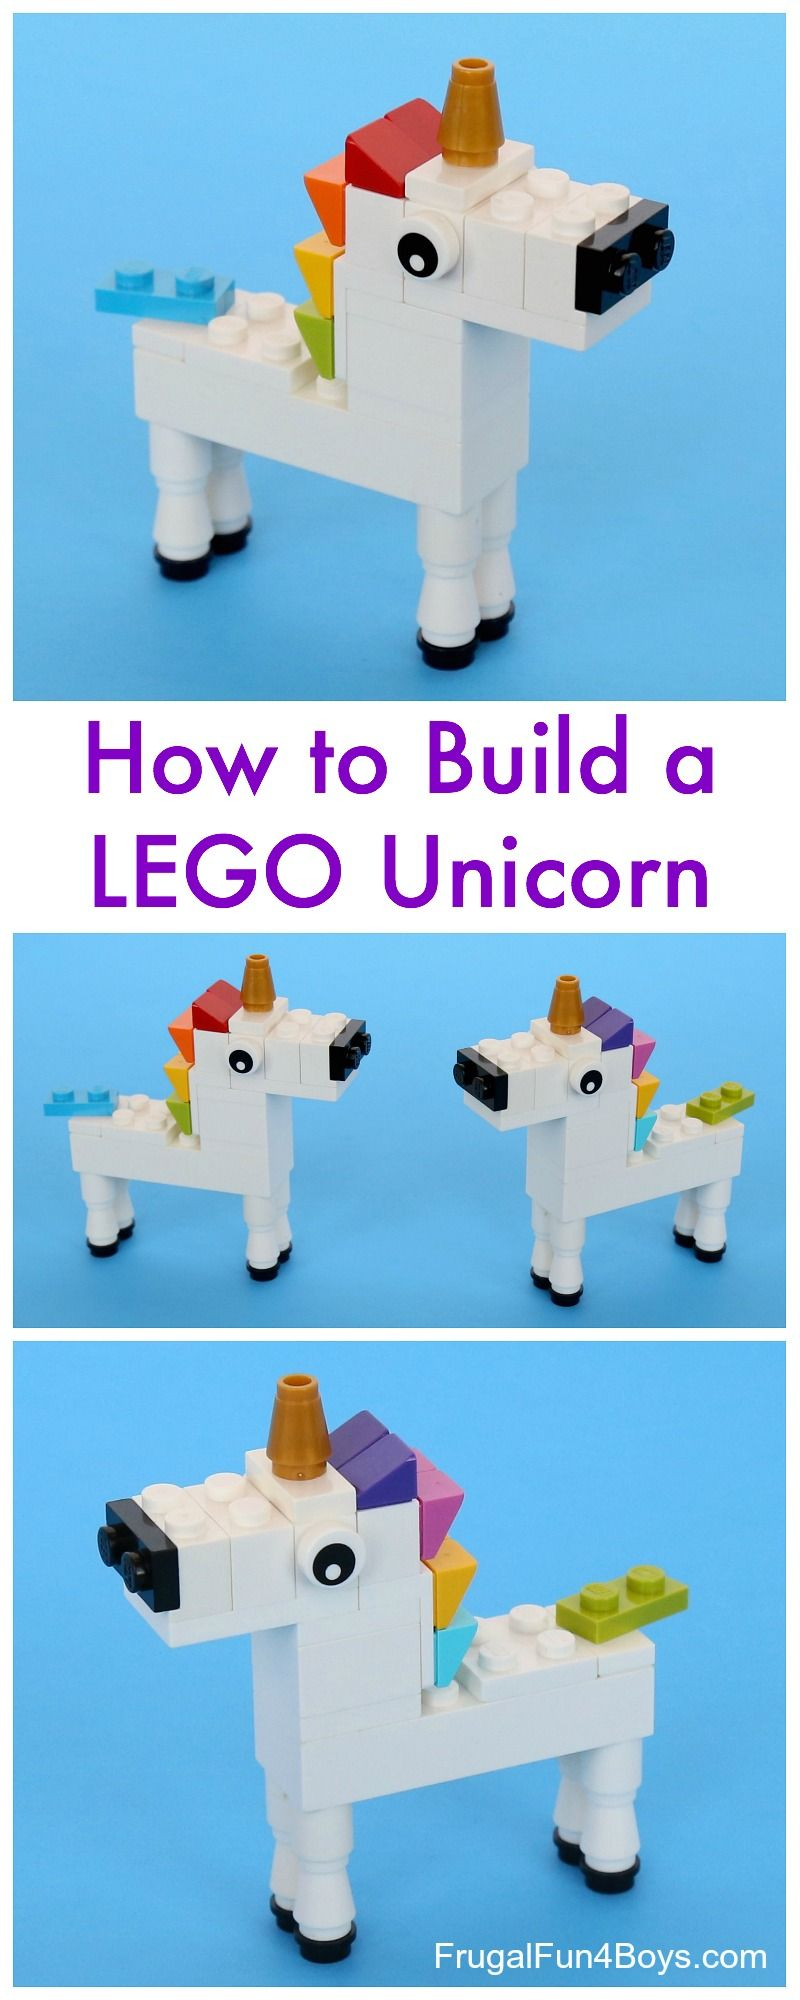 LEGO Unicorn Building Instructions | Frugal Fun for Boys and